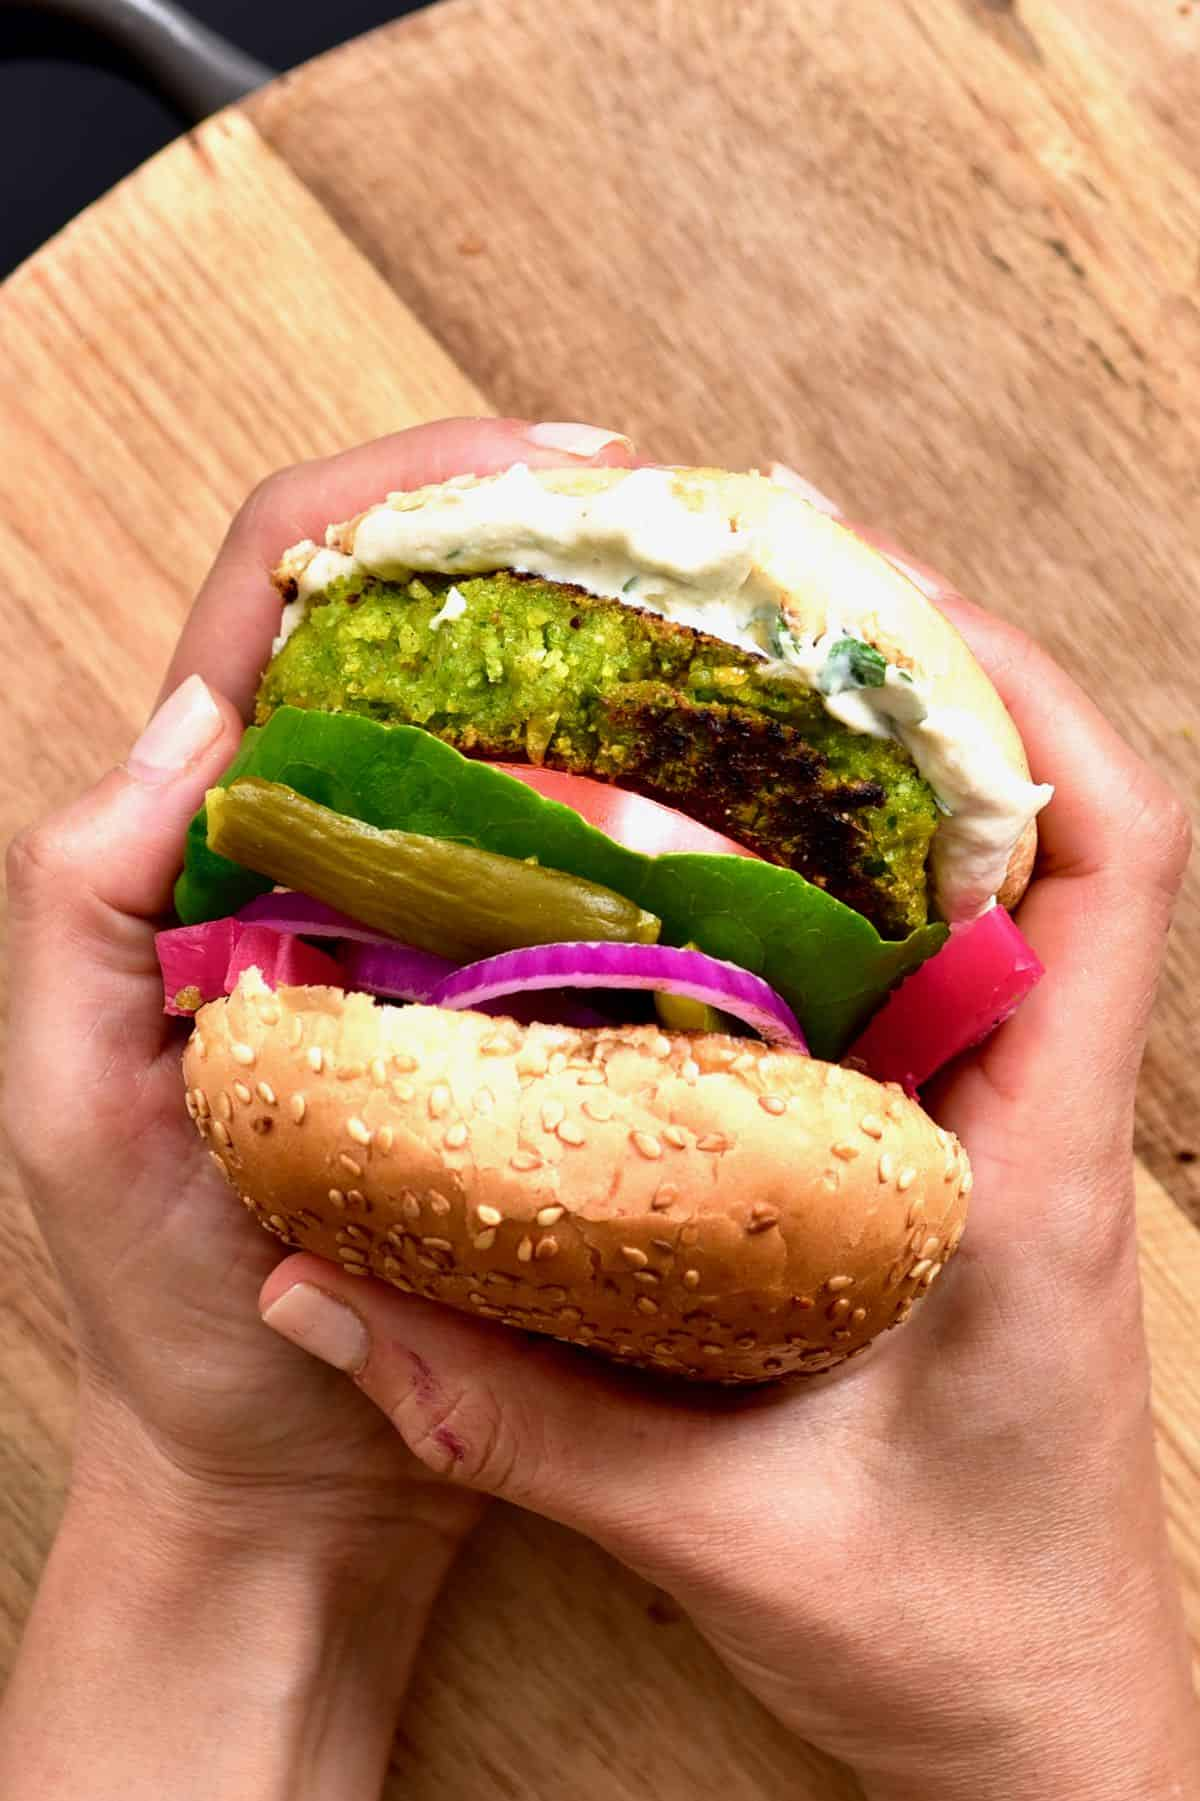 Hands holding a burger with onion, pickles, lettuce, tomato and falafel patty